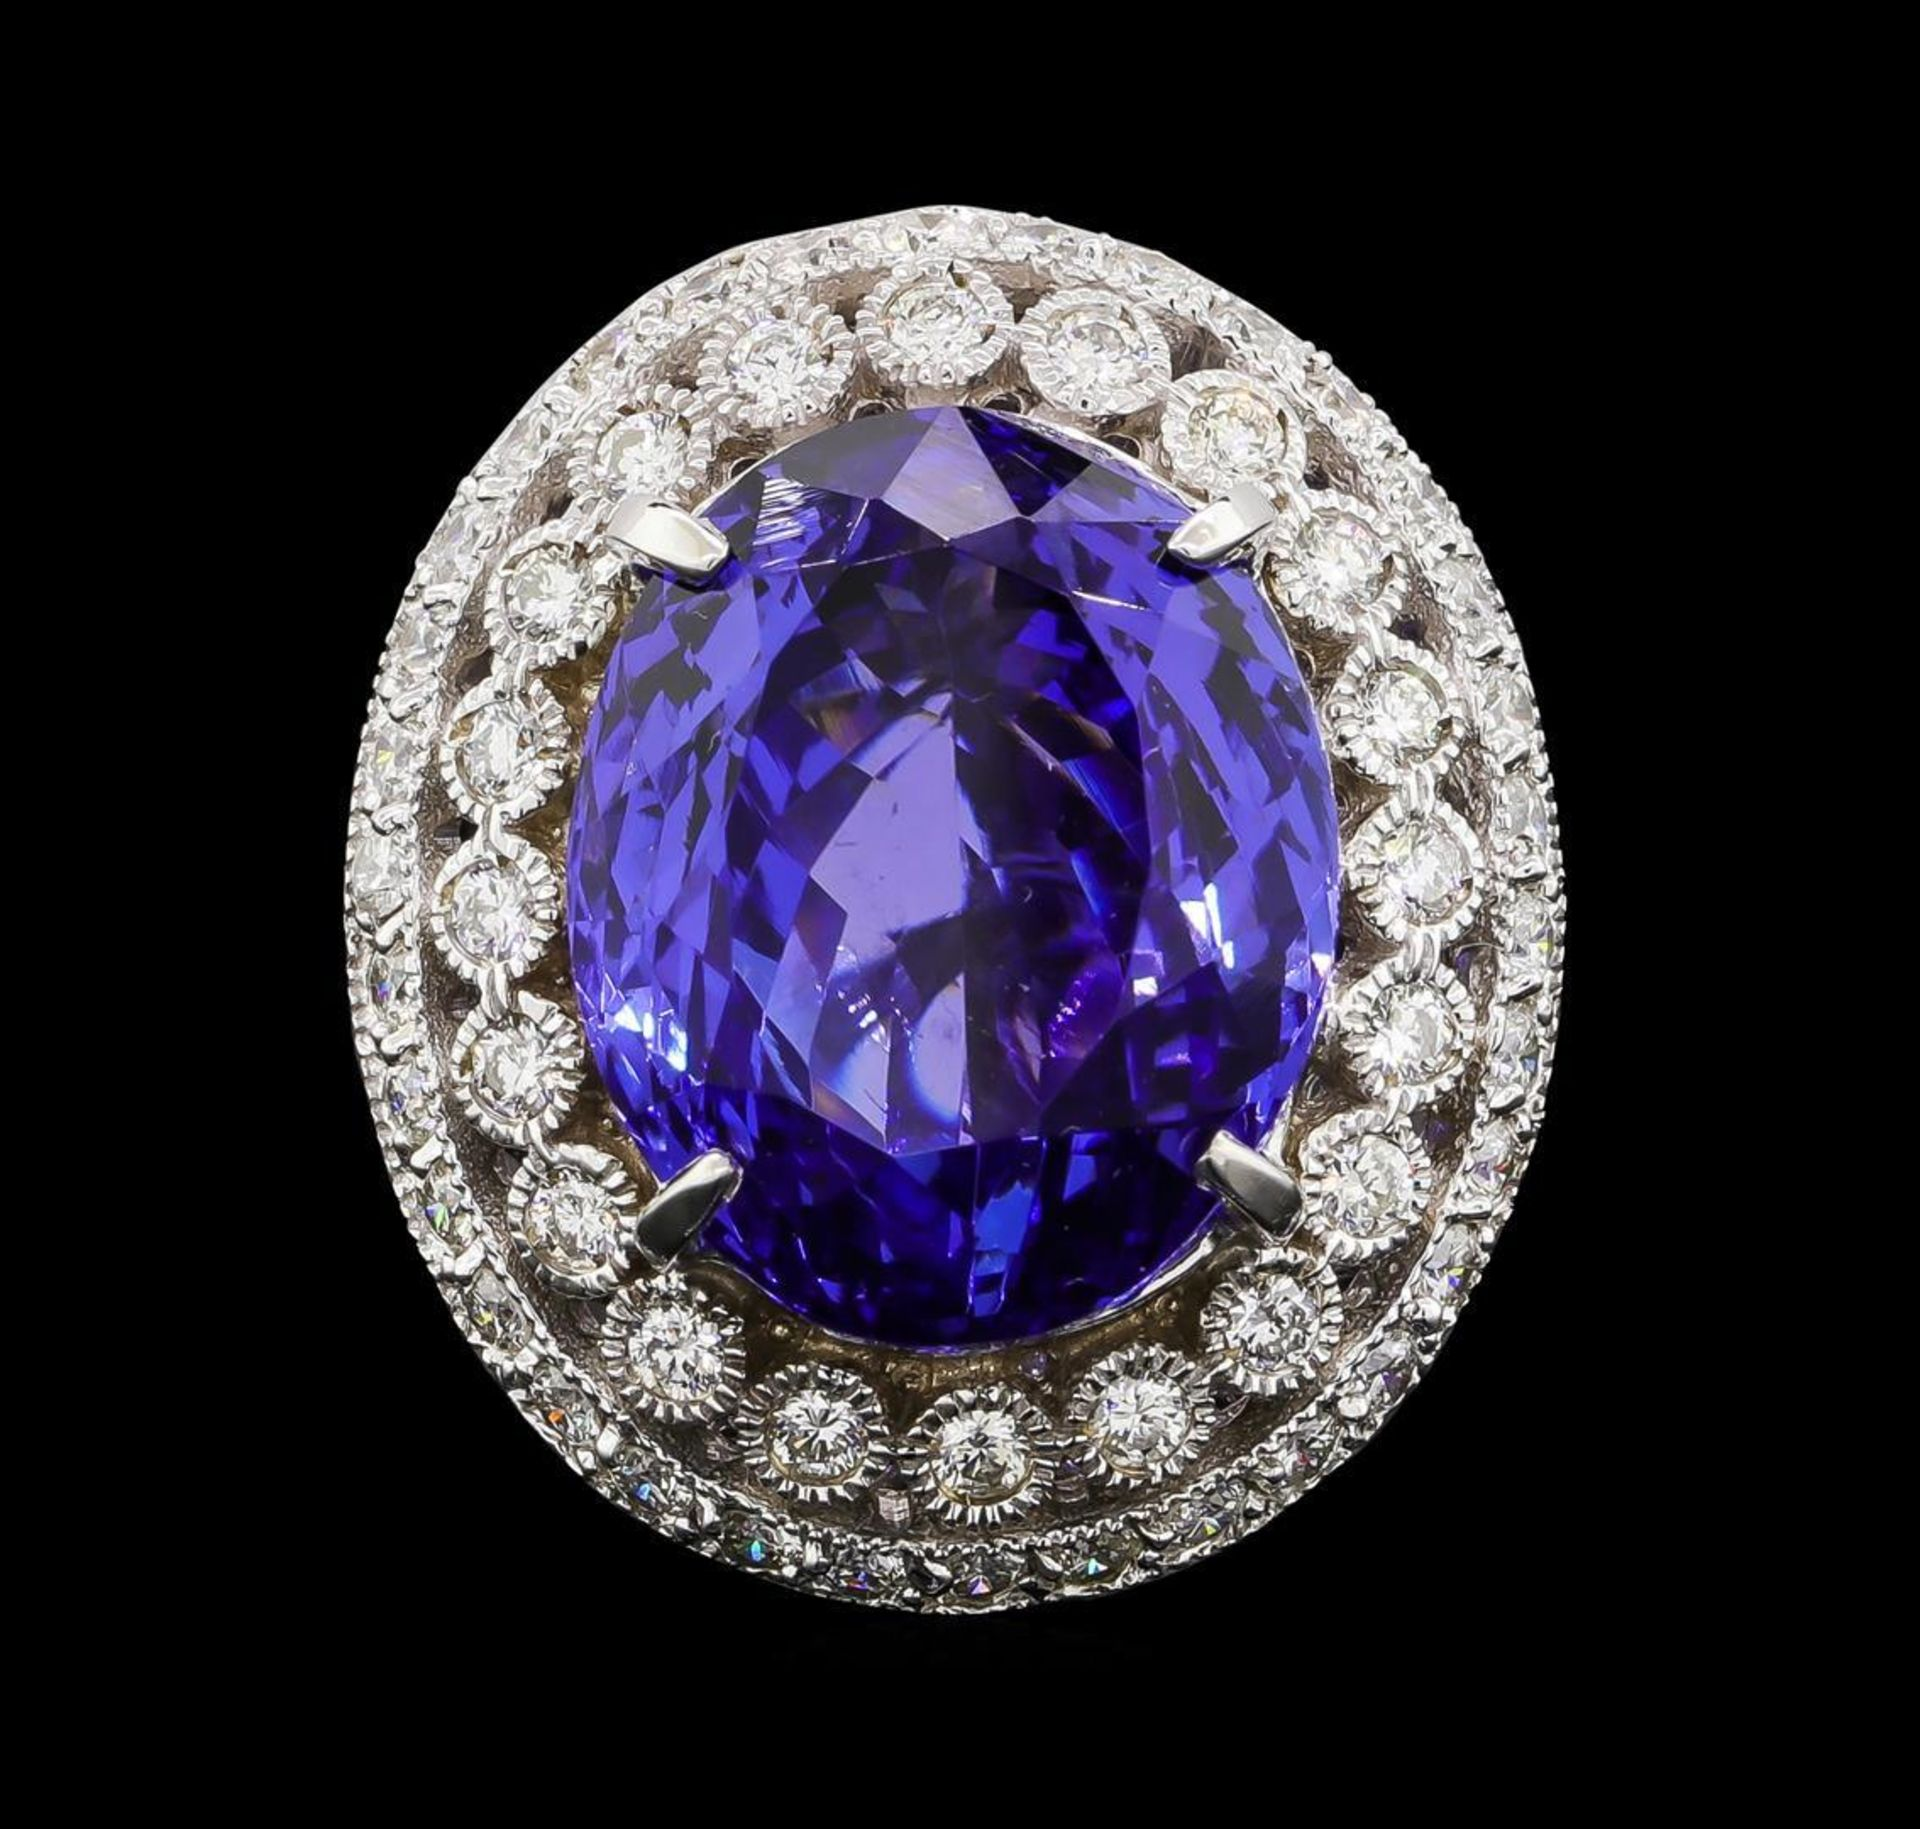 GIA Cert 19.95 ctw Tanzanite and Diamond Ring - 14KT White Gold - Image 2 of 6